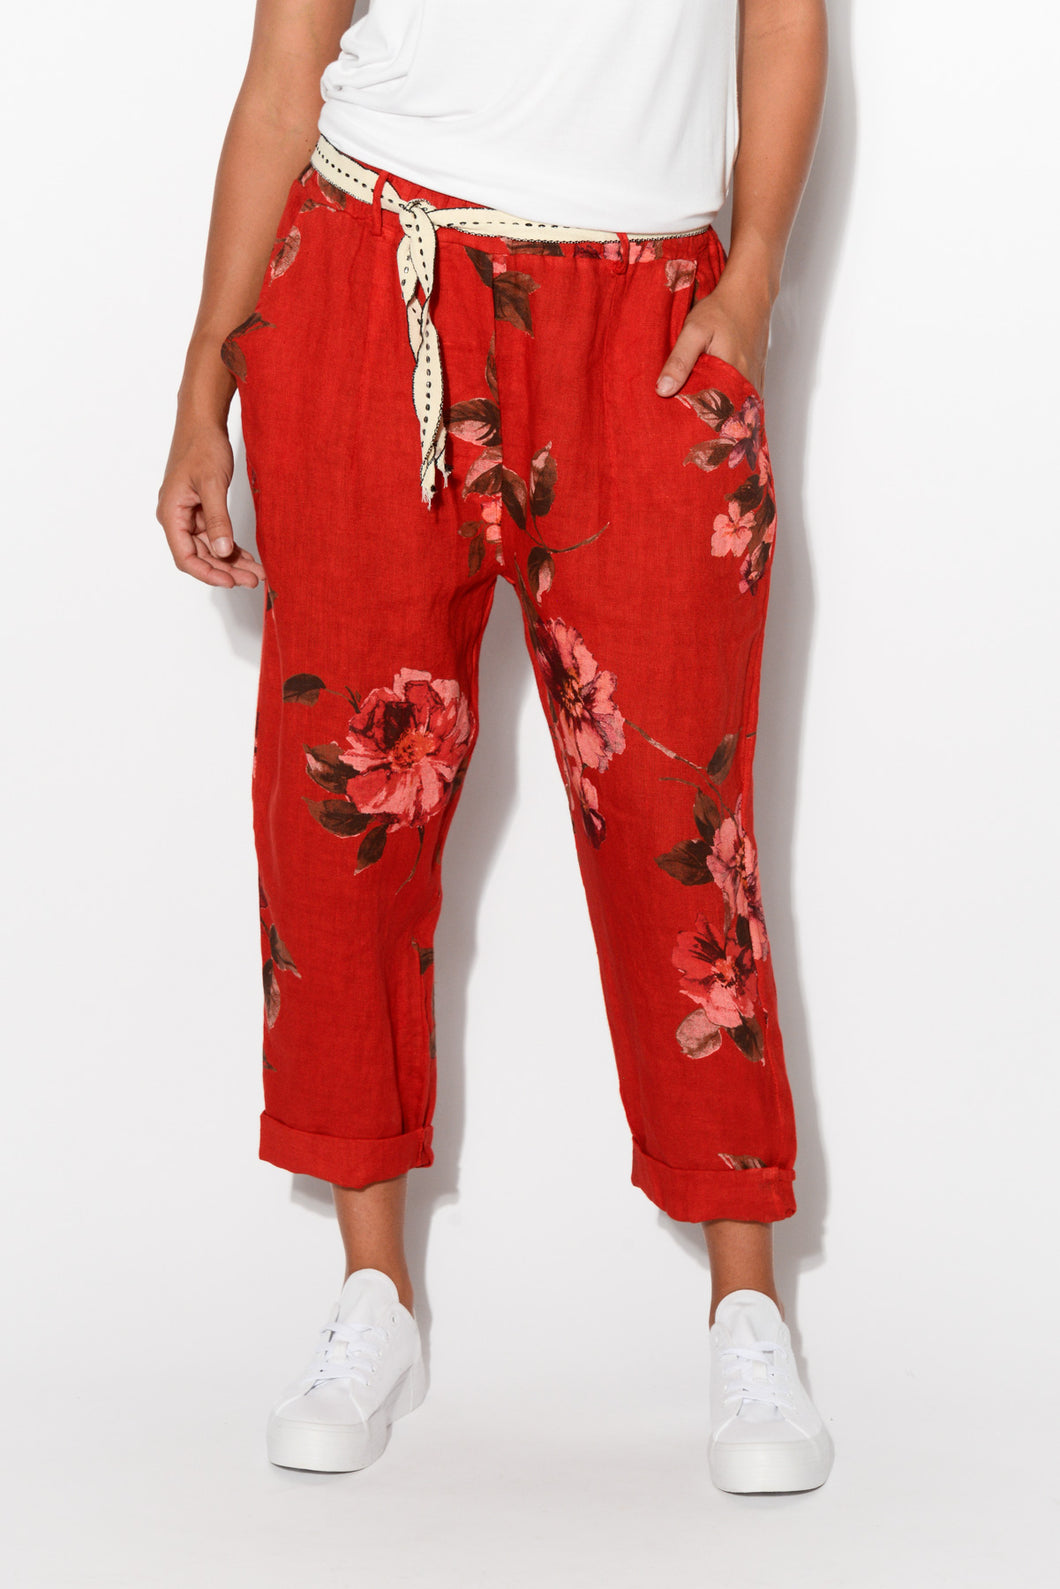 Red Floral Linen Pant - Blue Bungalow